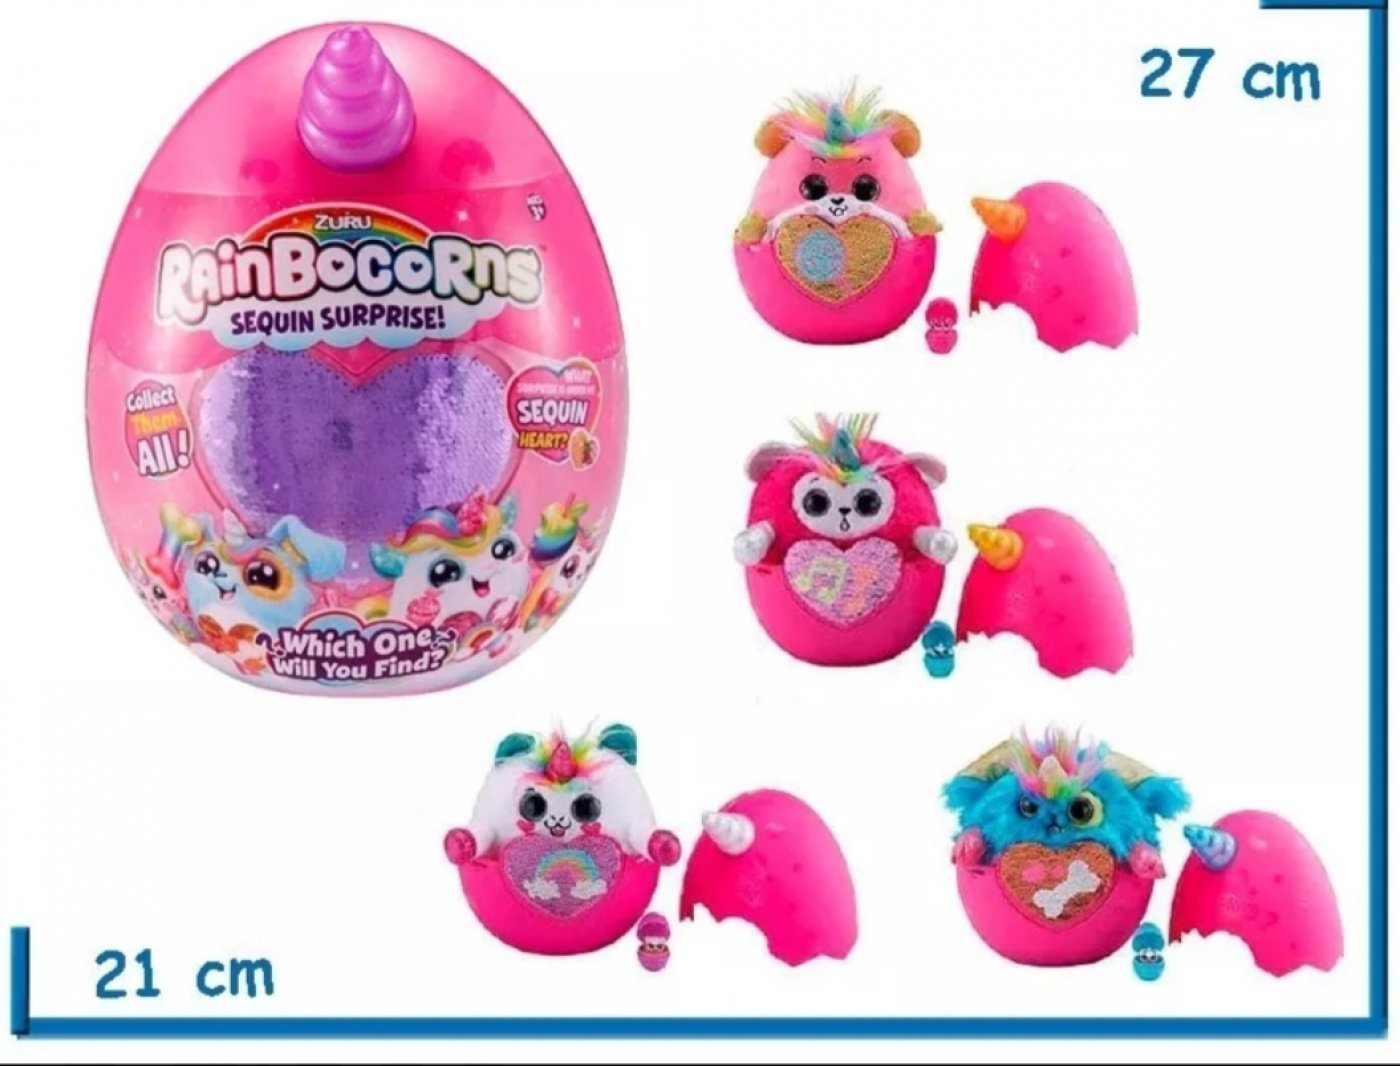 Rainbocorns Peluche Unicornio